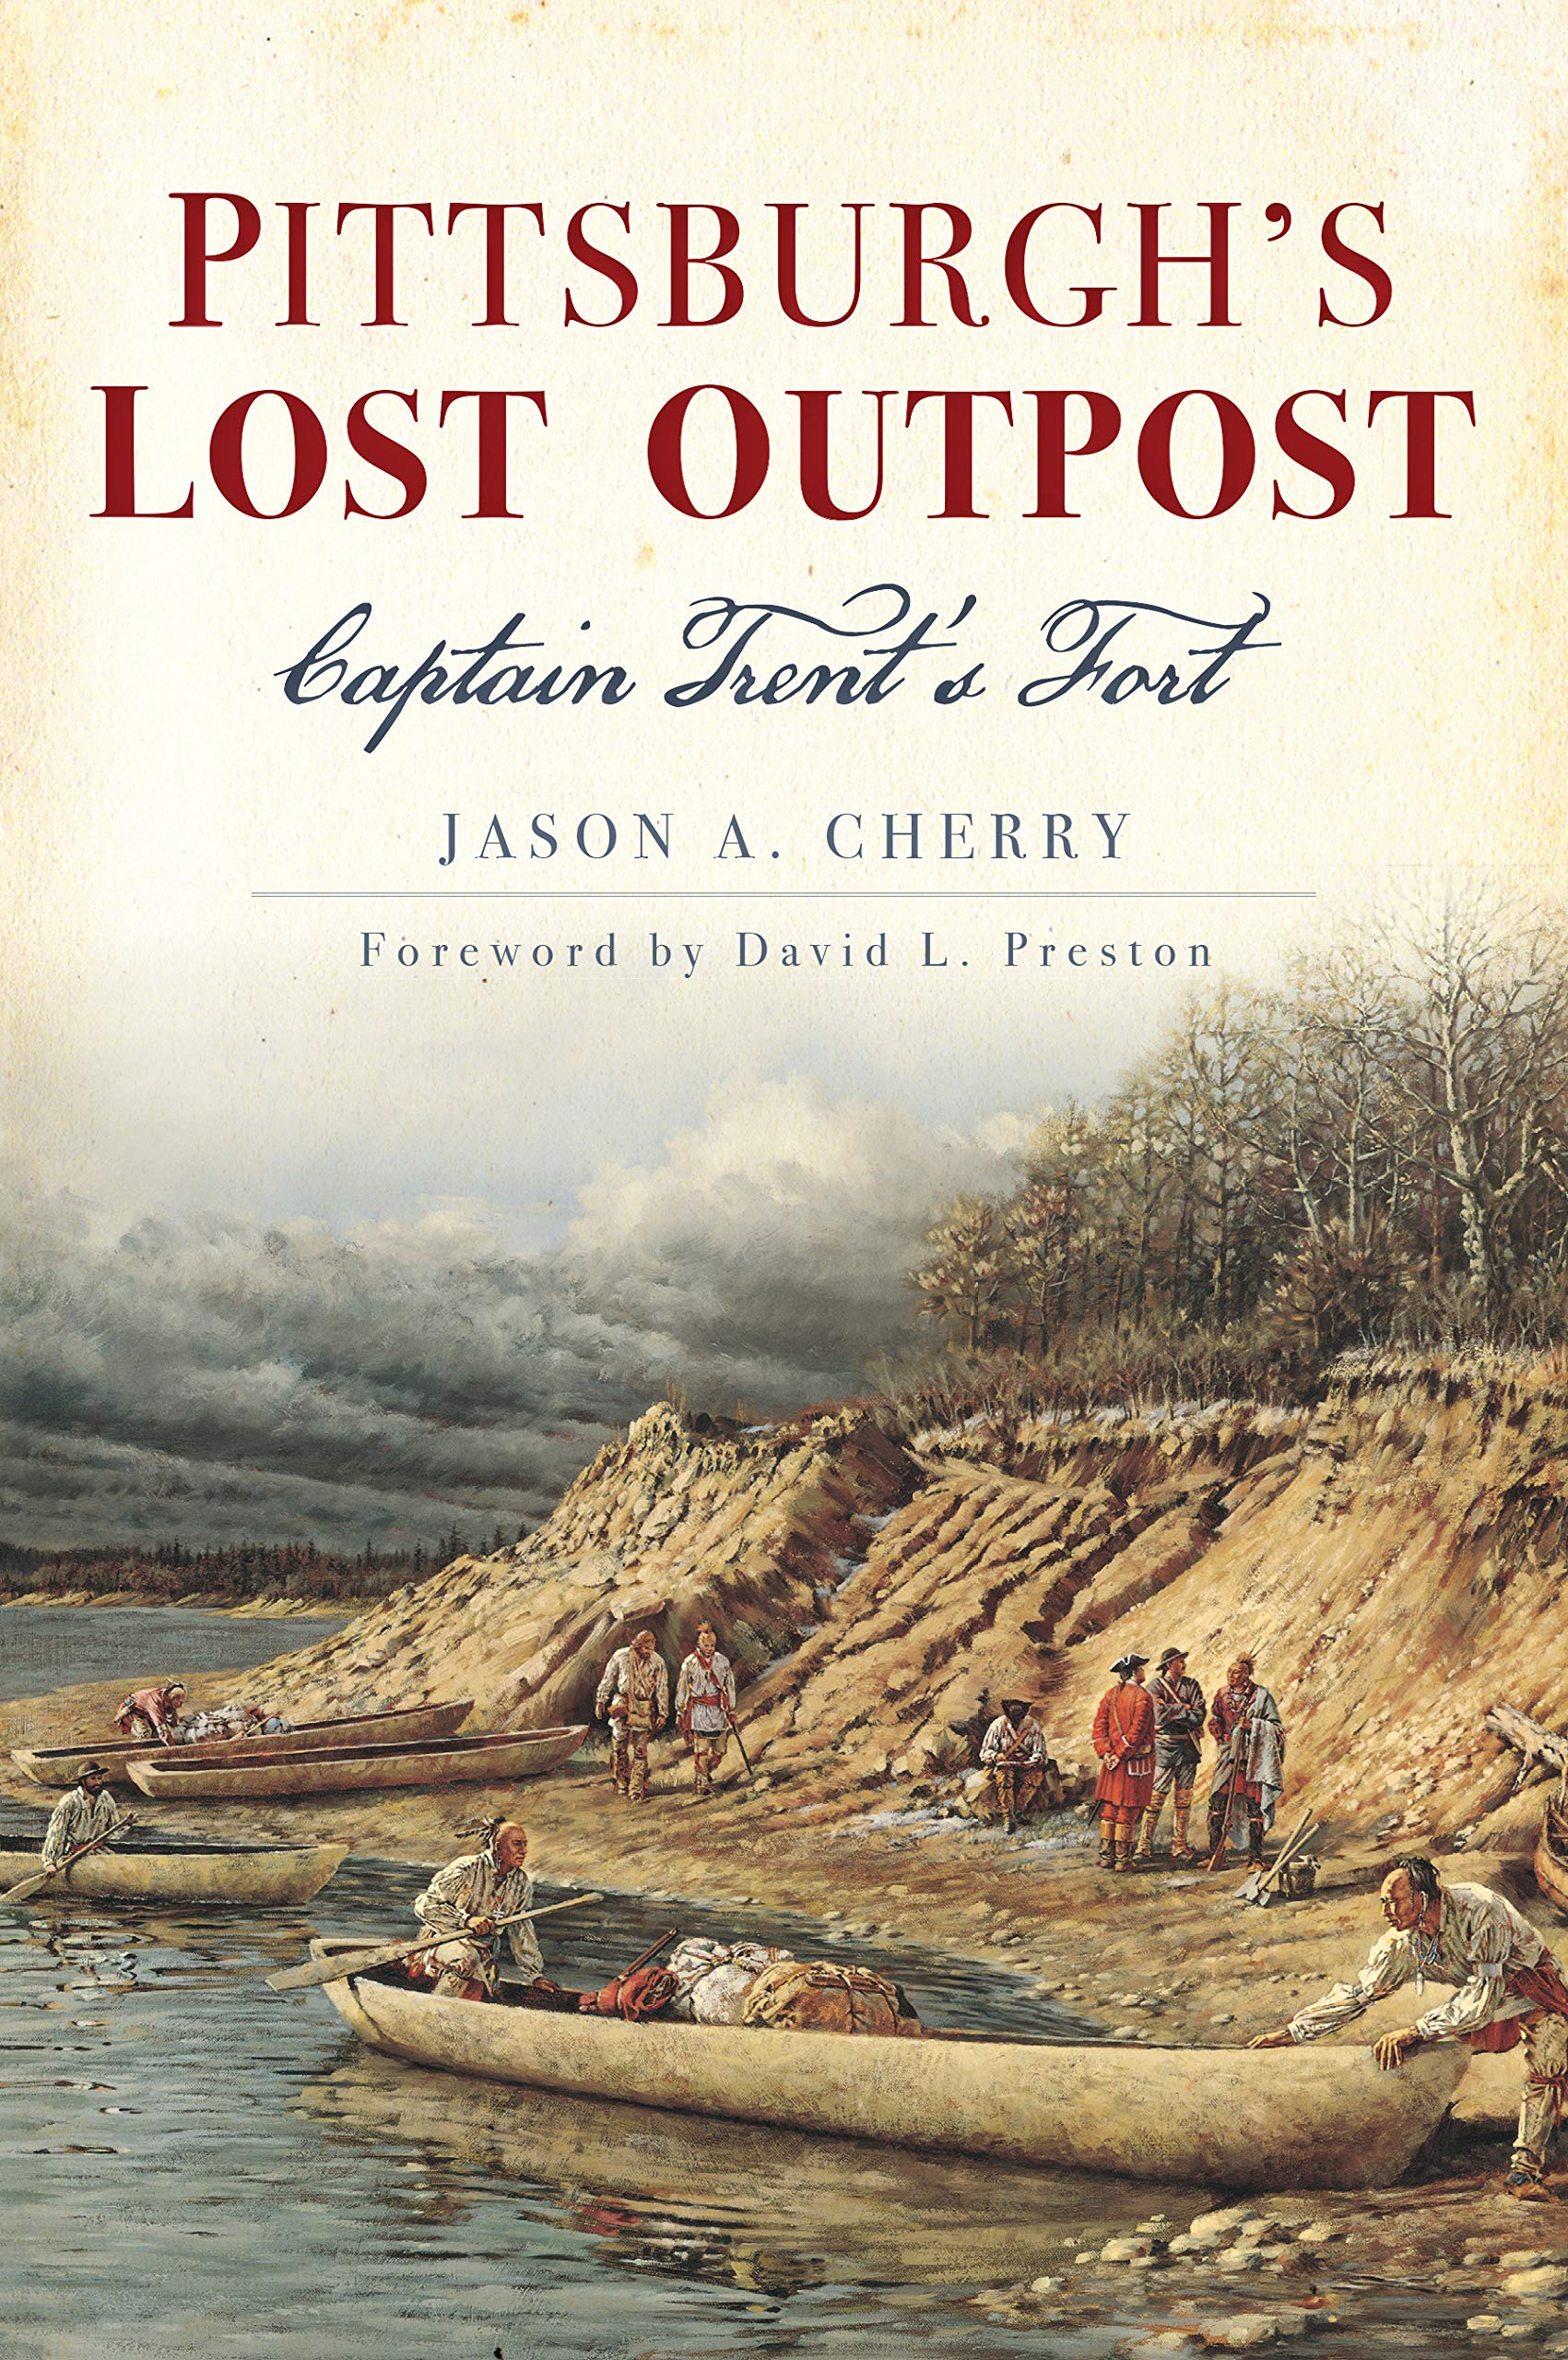 Image result for PITTSBURGH'S LOST OUTPOST